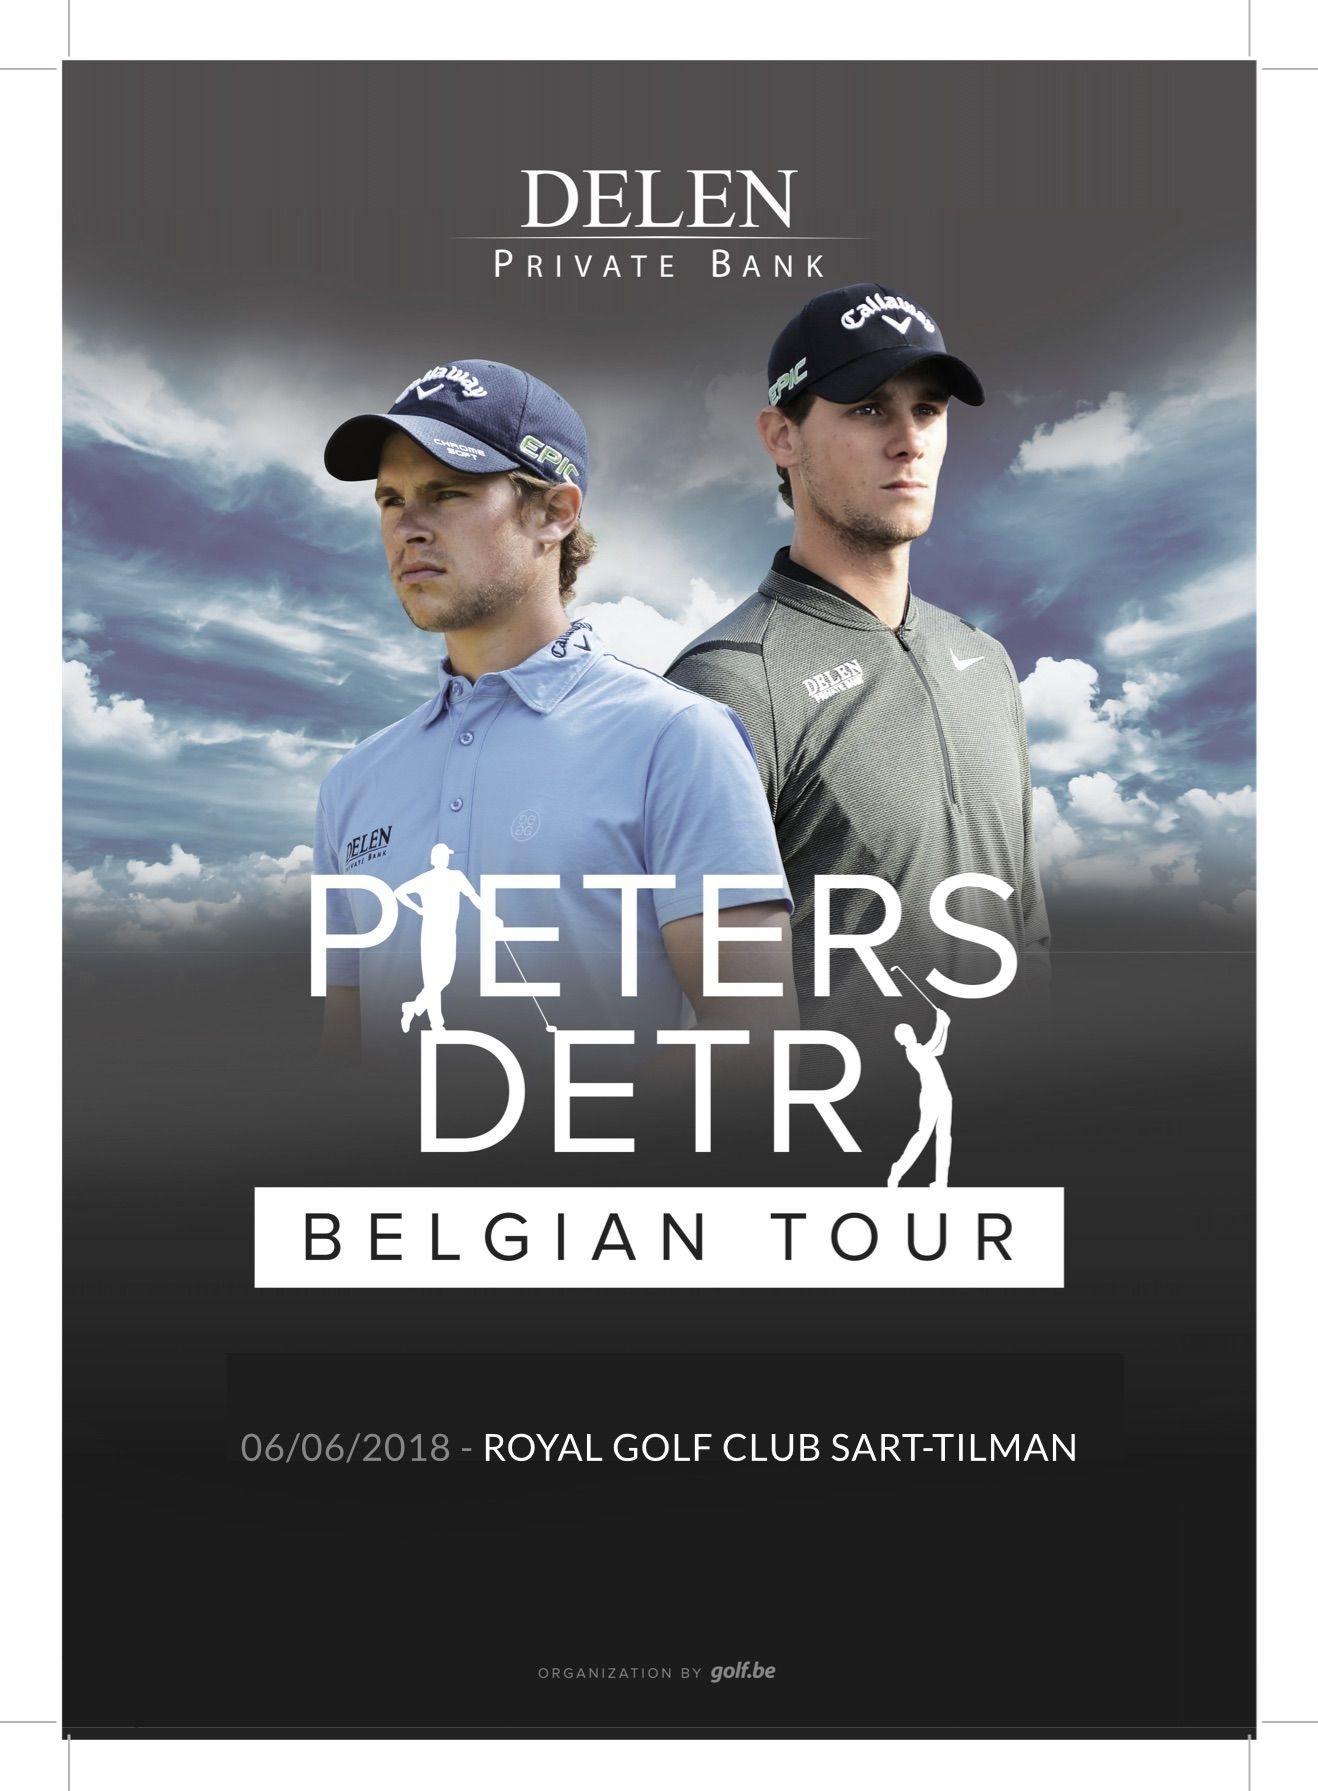 Pieters & Detry Belgian Tour by Delen Private Bank